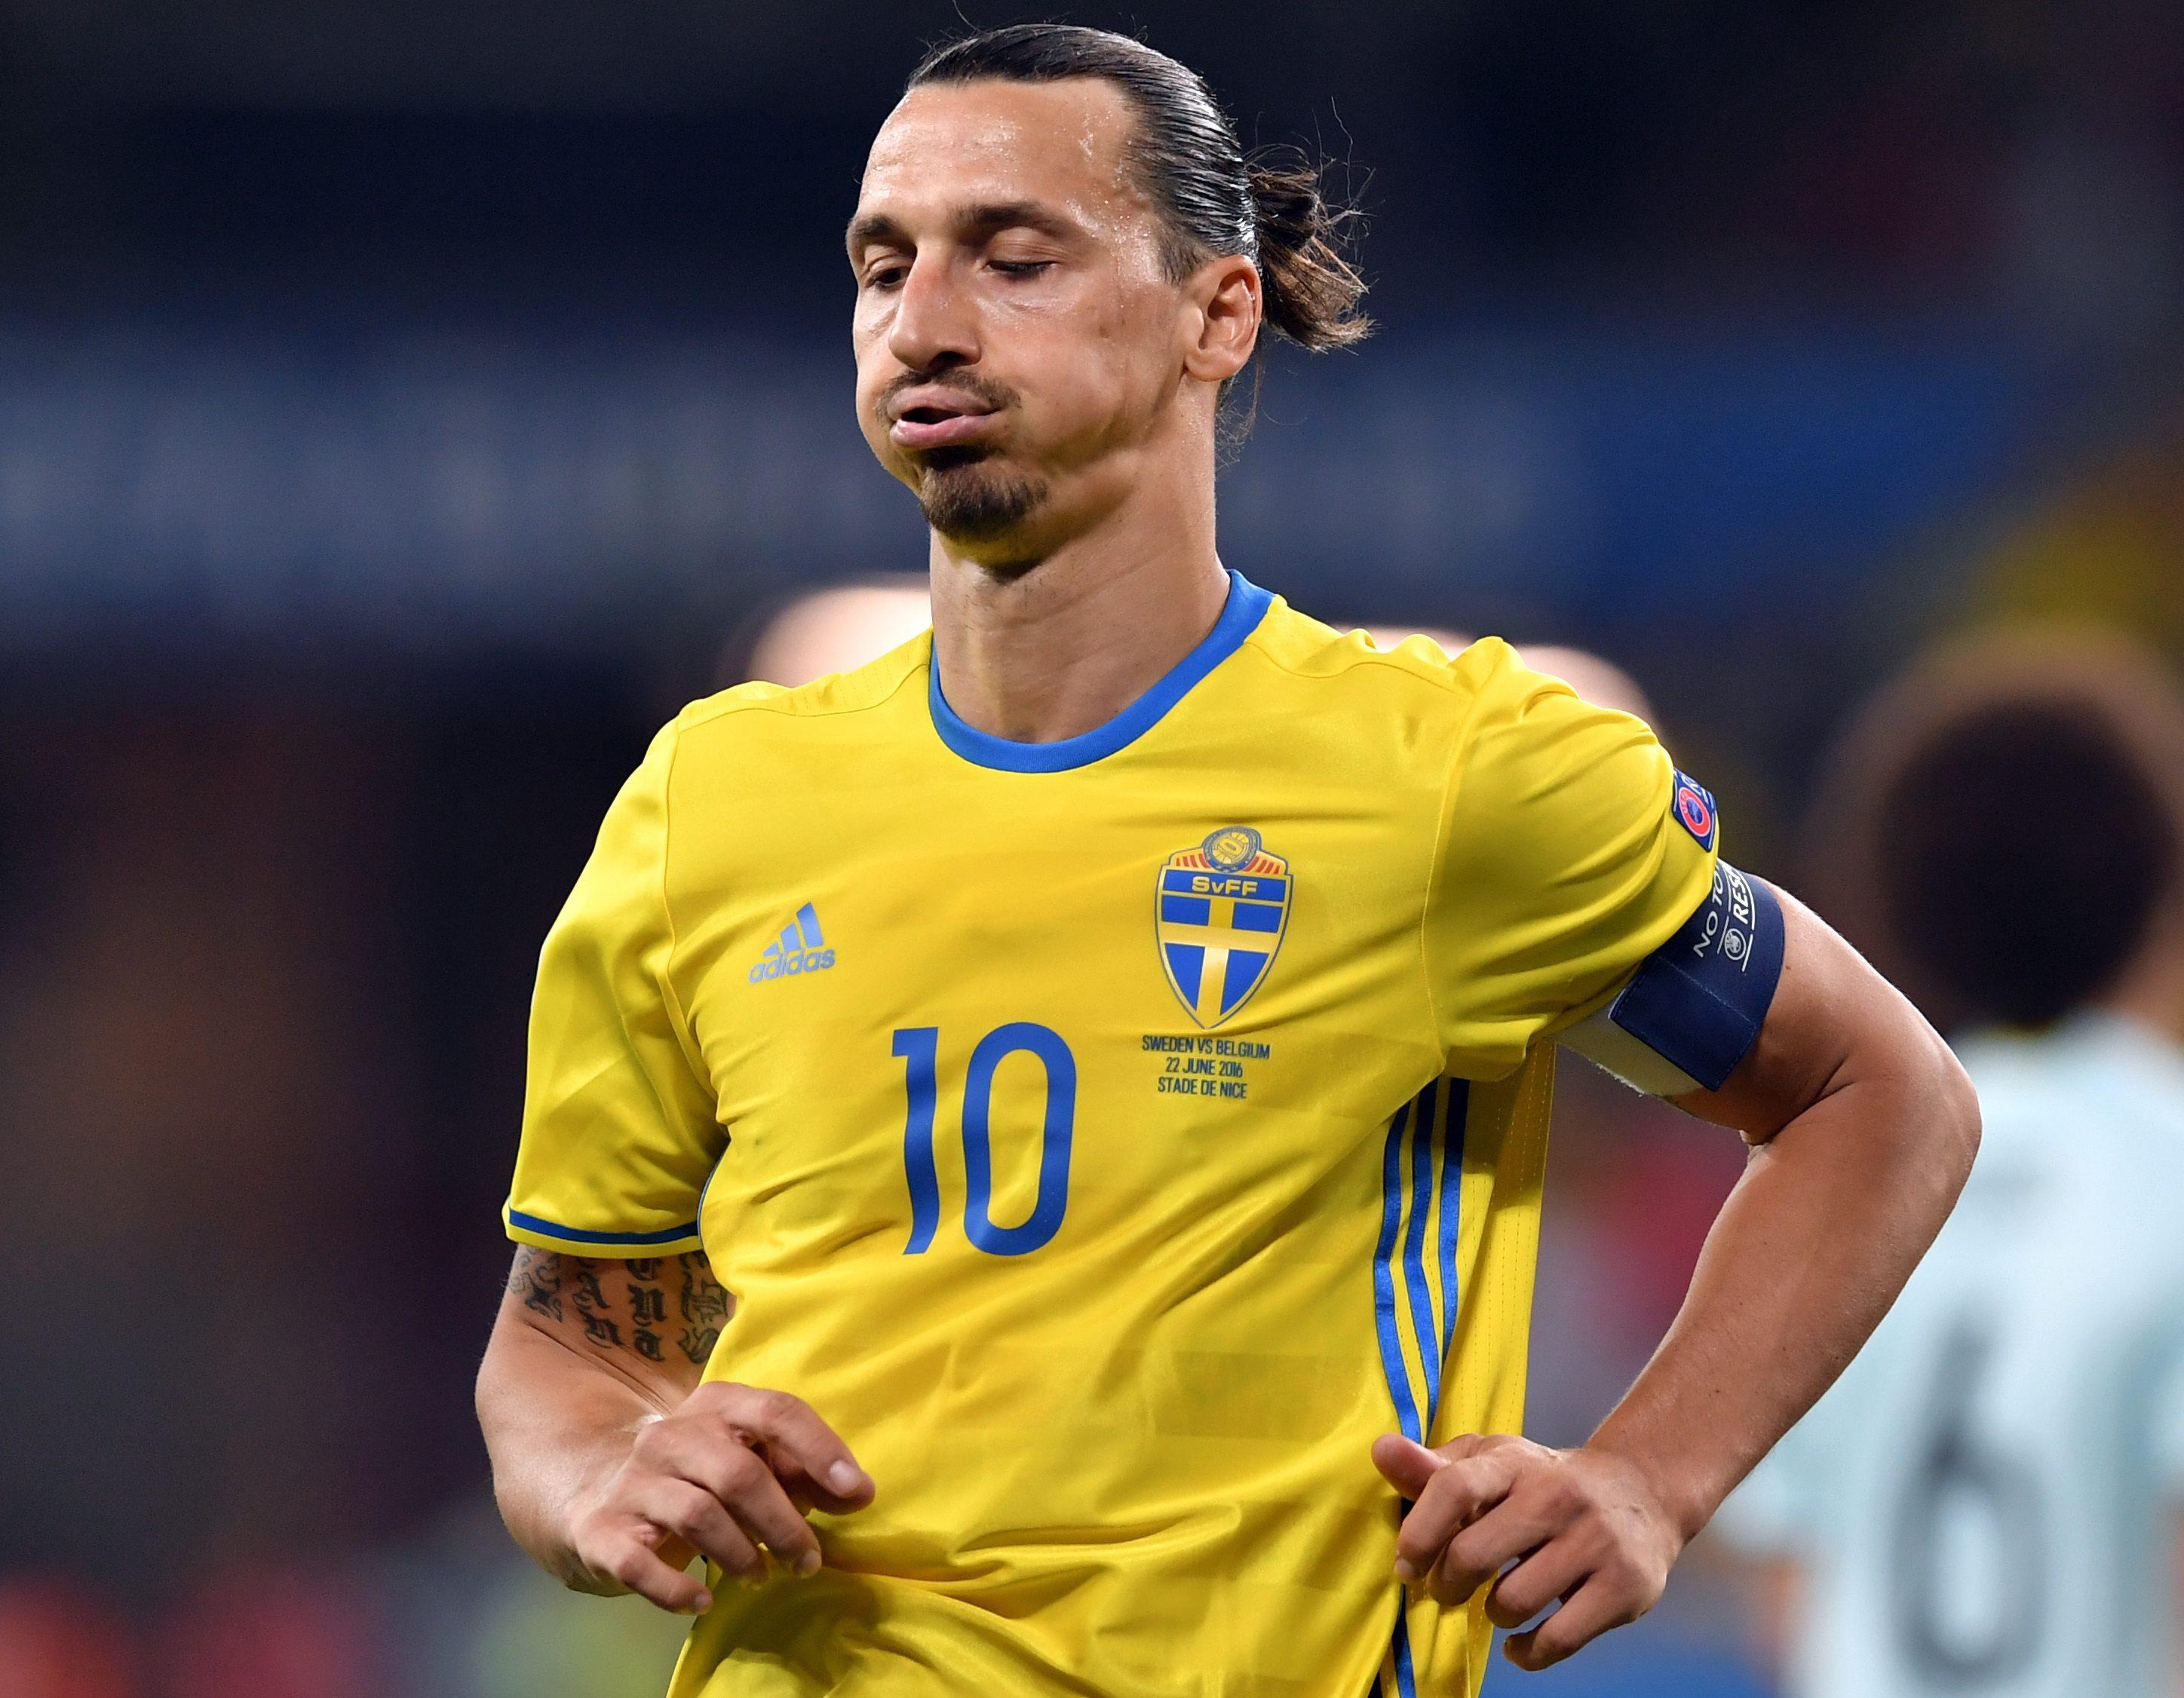 What are the odds on Zlatan Ibrahimovic playing at the next World Cup?